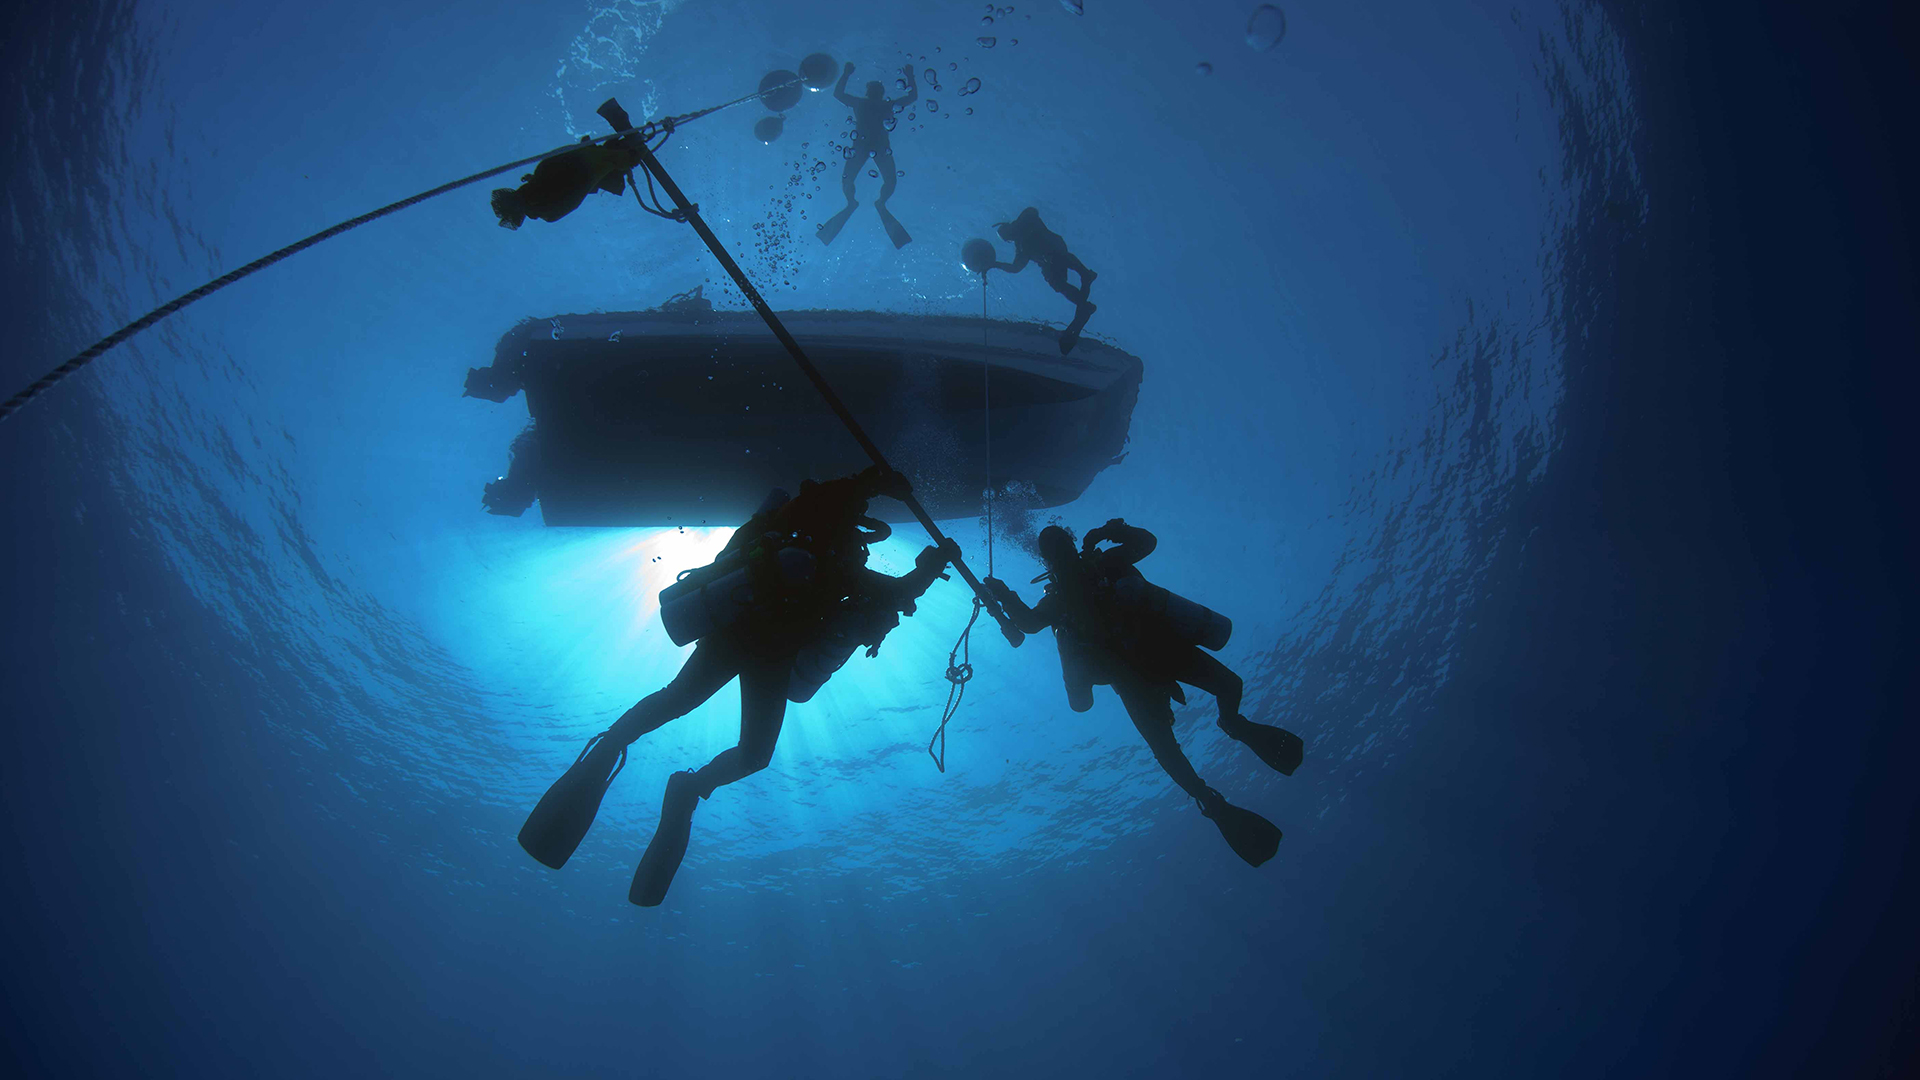 Underwater diving   Wikipedia We conduct daily census of biodiversity sightings of sharks  fishes and  other ocean fauna on Aliwal Shoal  oceans research